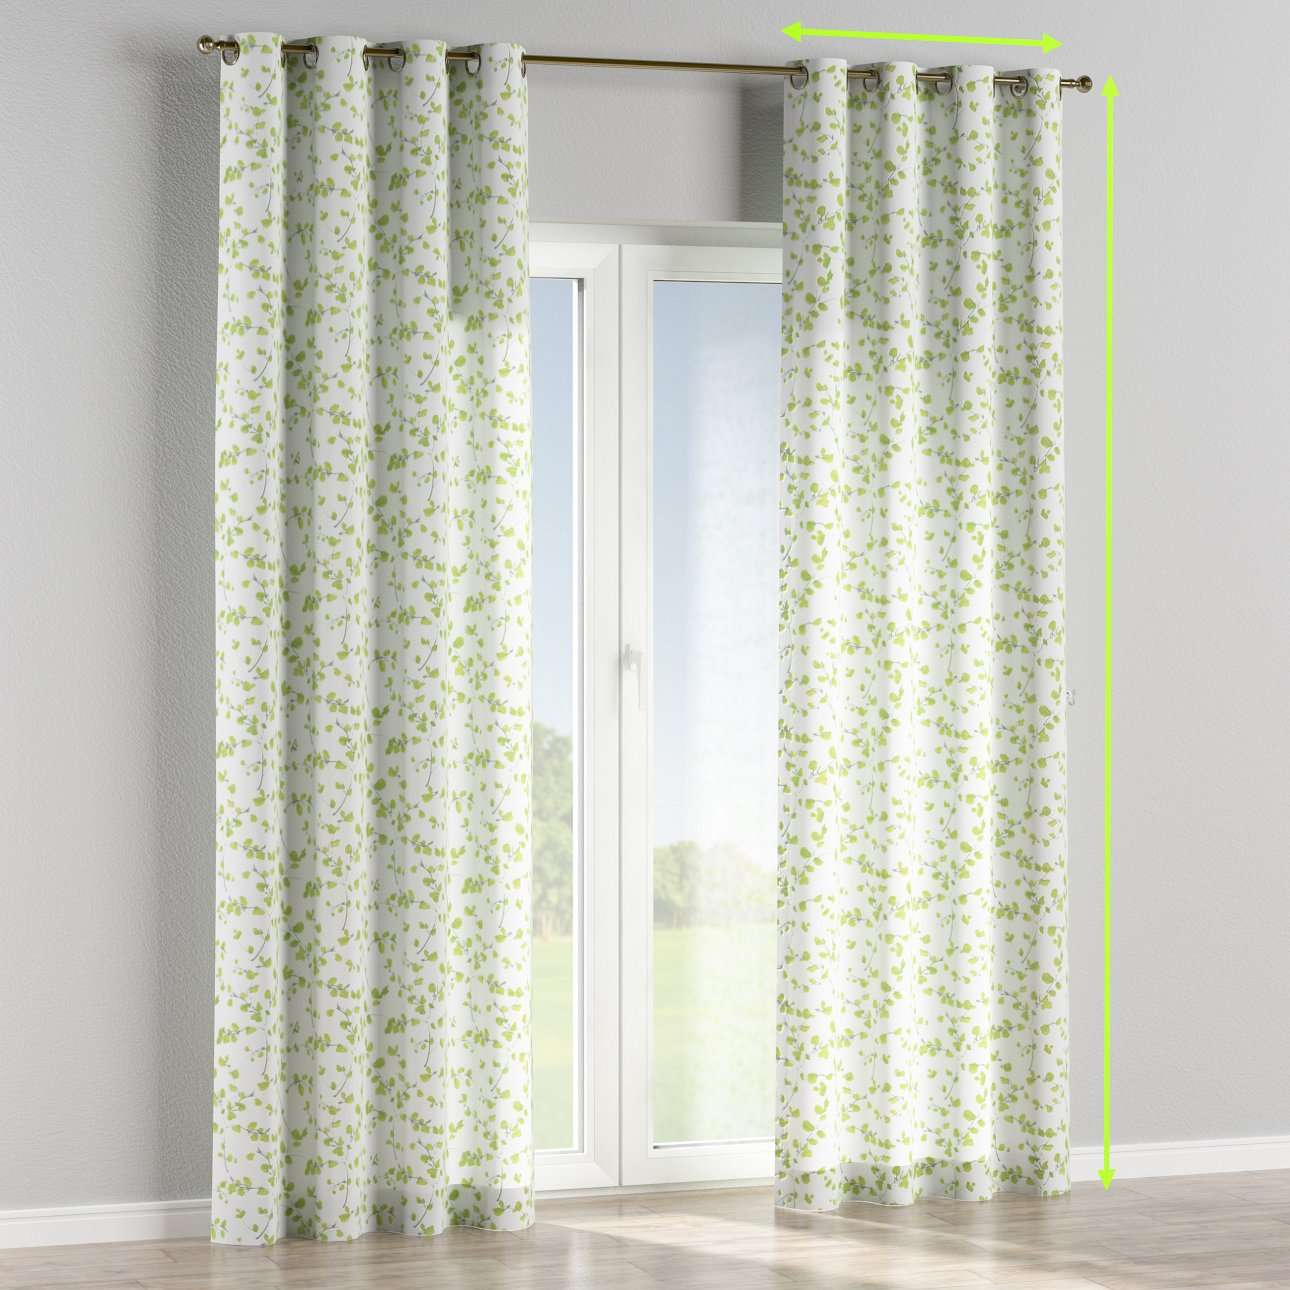 Eyelet lined curtains in collection Aquarelle, fabric: 140-76